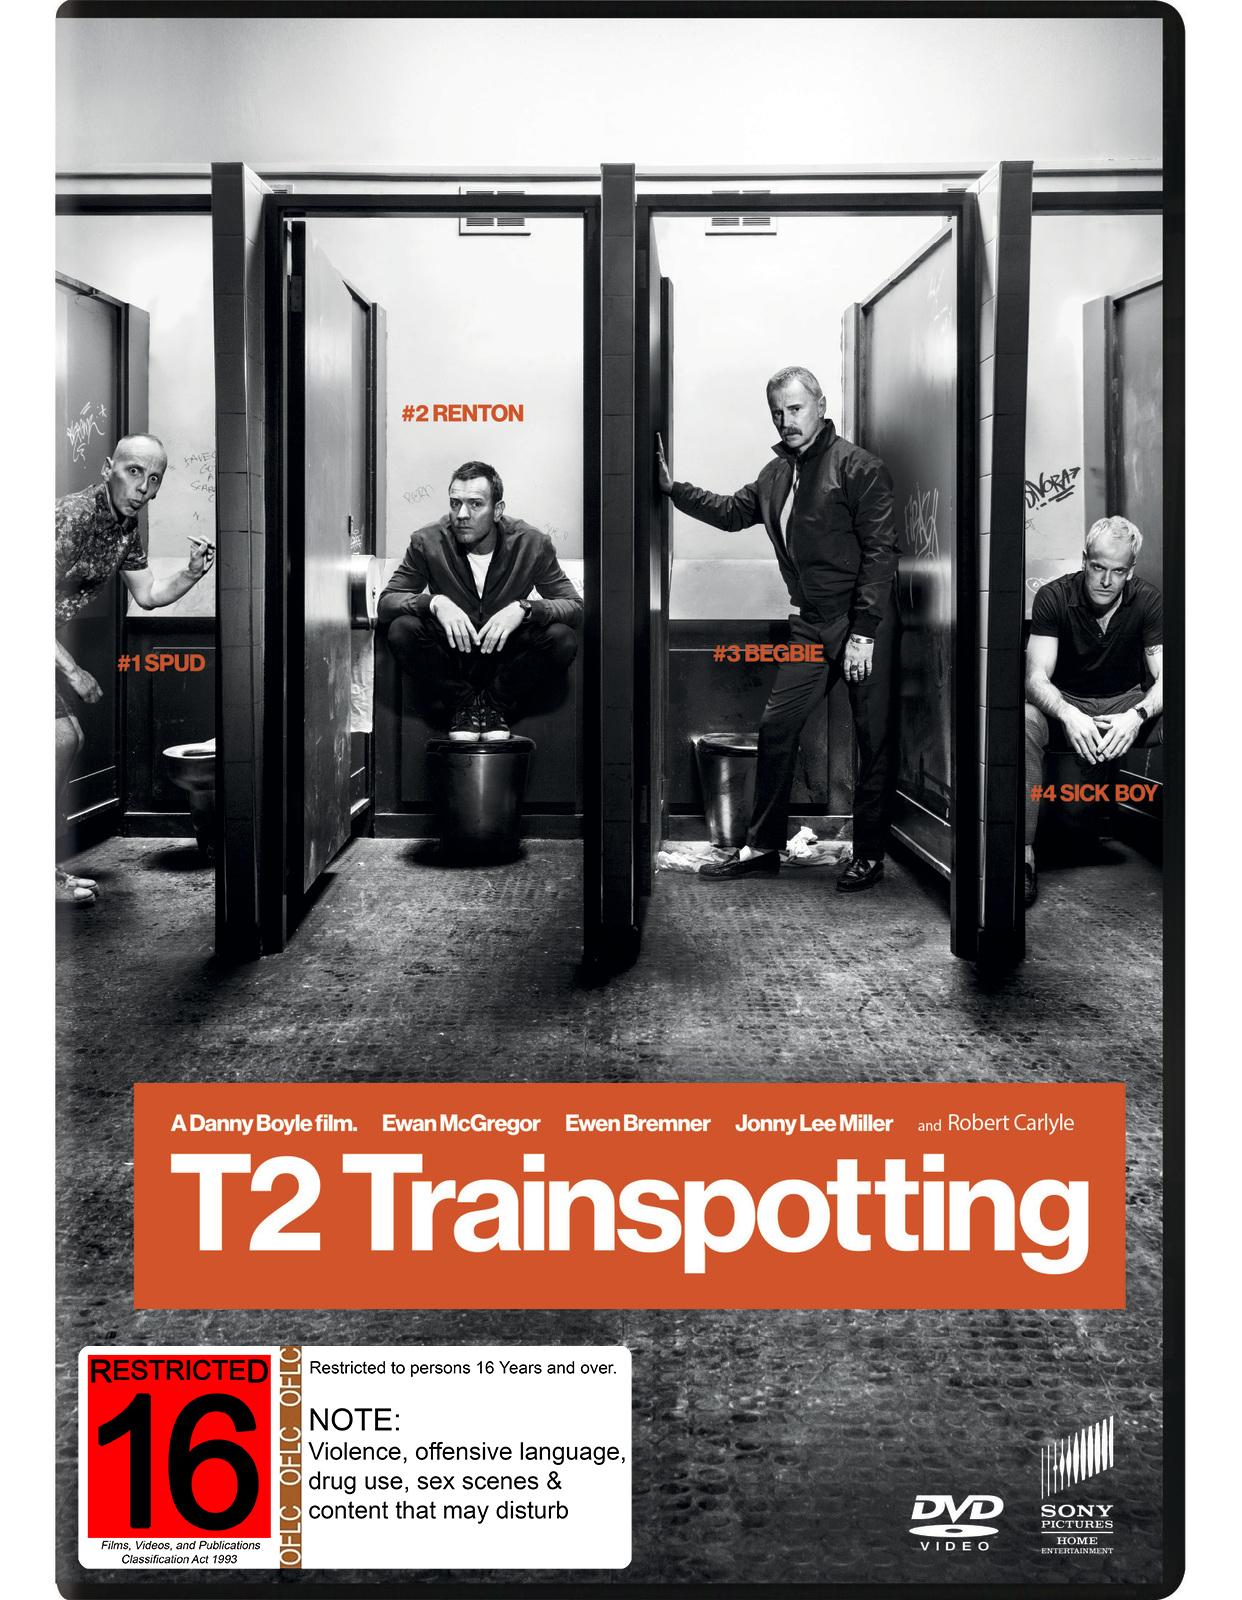 Trainspotting 2 DVD image